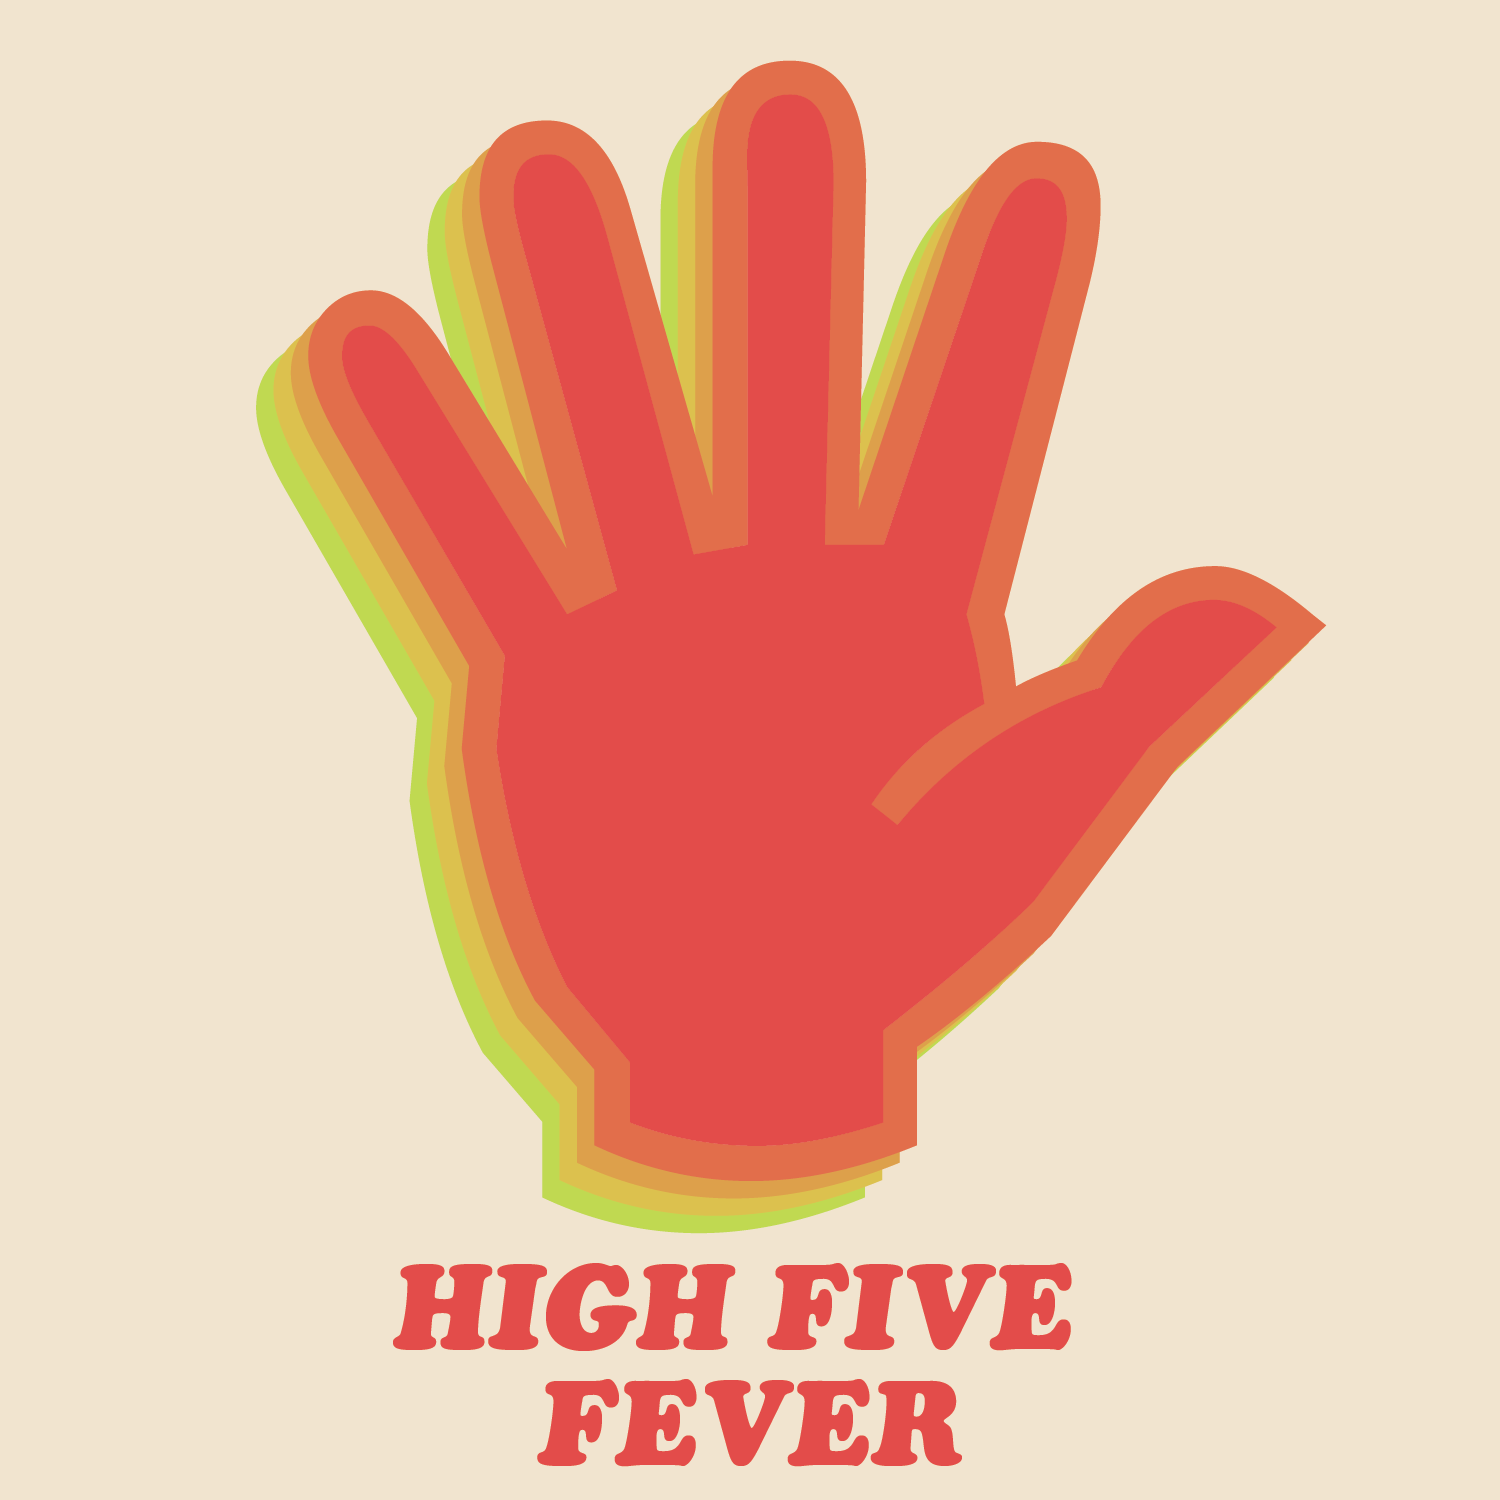 HIGH FIVE-02.png